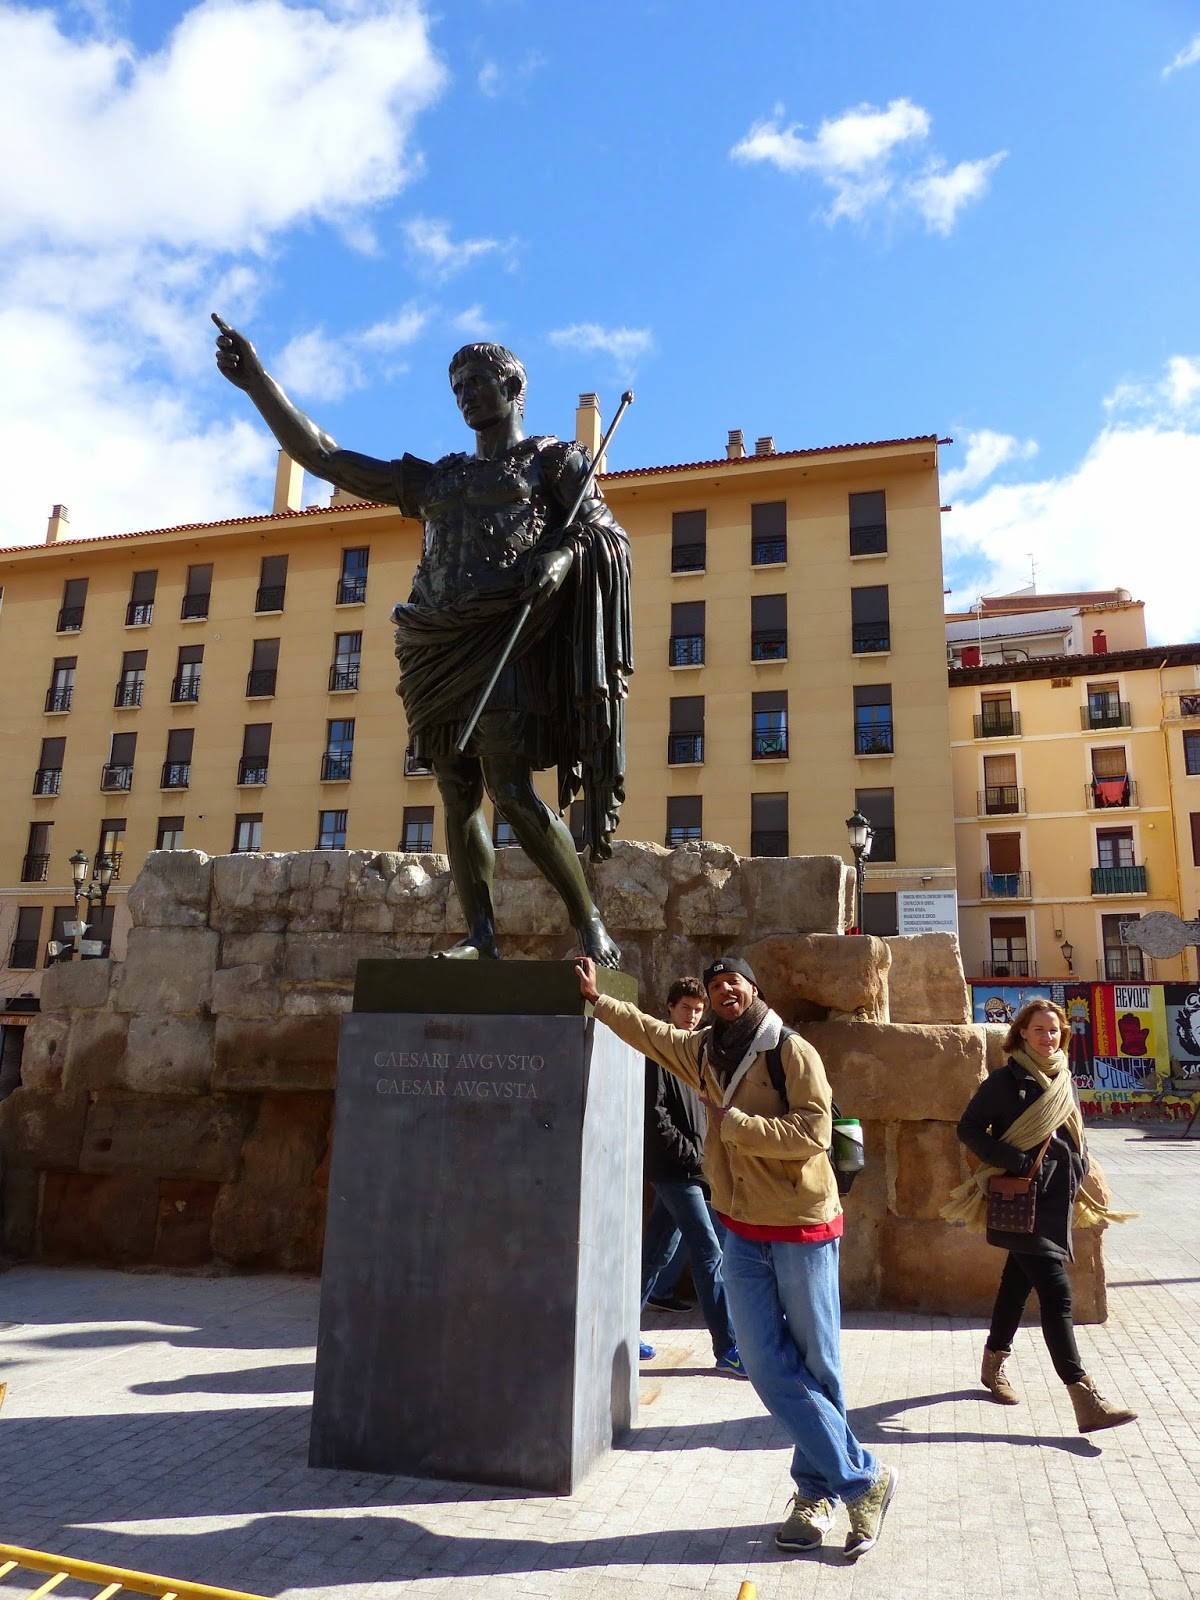 With the man, the one the city is named after, and Julius Cesar next to him